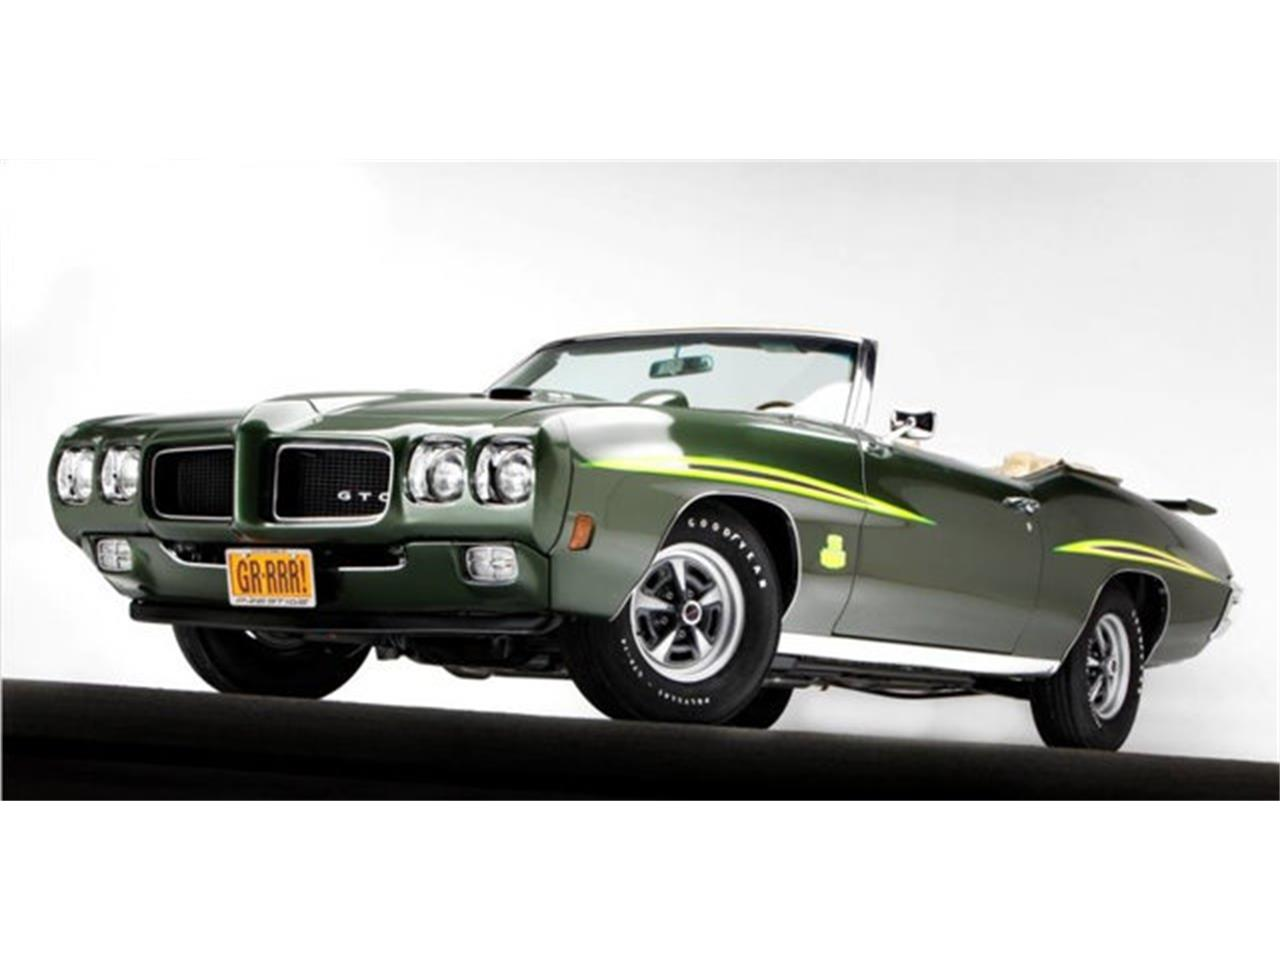 Large Picture of 1970 GTO (The Judge) located in Clifton Park New York - $219,000.00 - QDN8